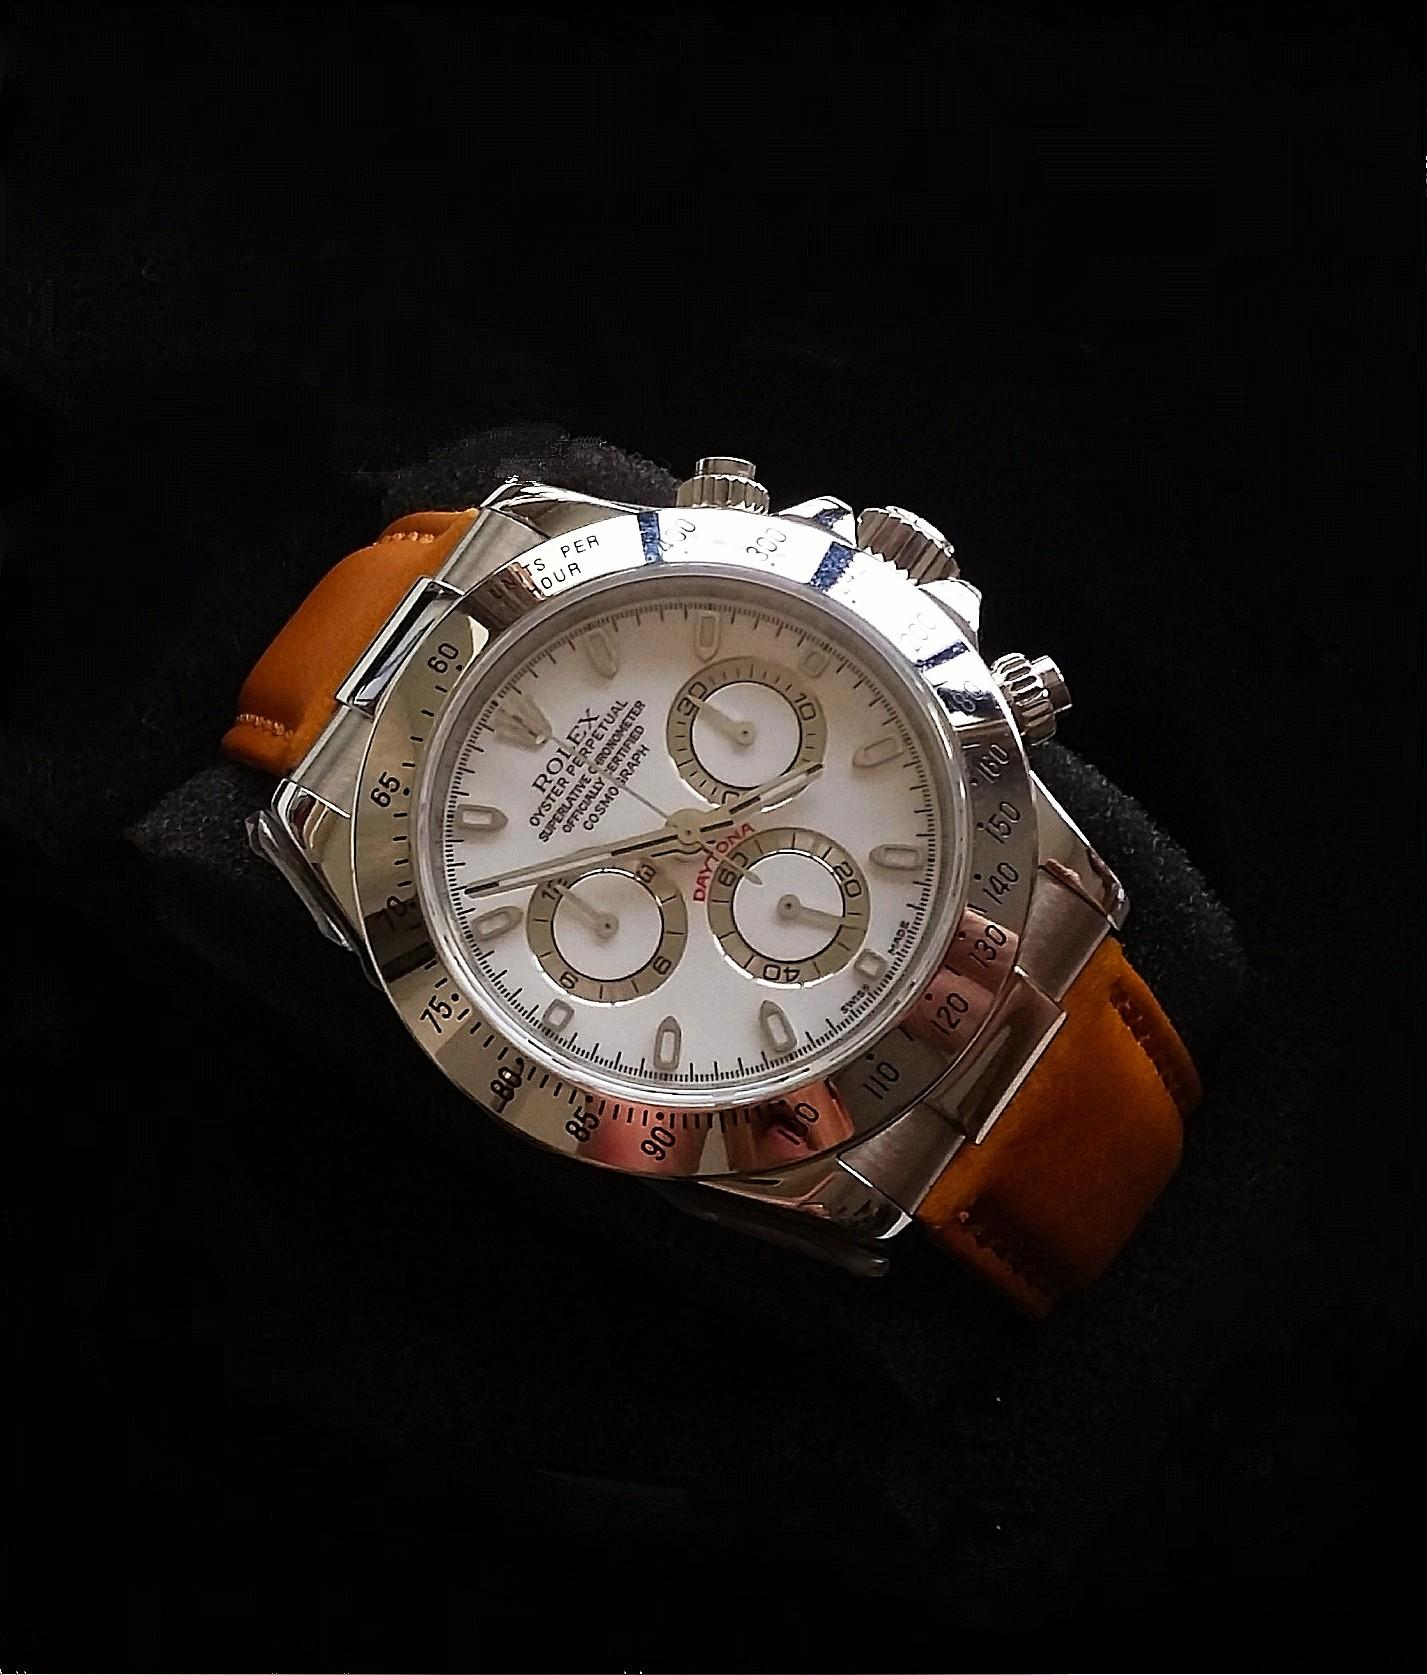 NEW TAN COLOUR CALF LEATHER STRAP WITH SS ENDLINK & CLASP FOR ROLEX DAYTONA (PRICE INCLUDES FITMENT)